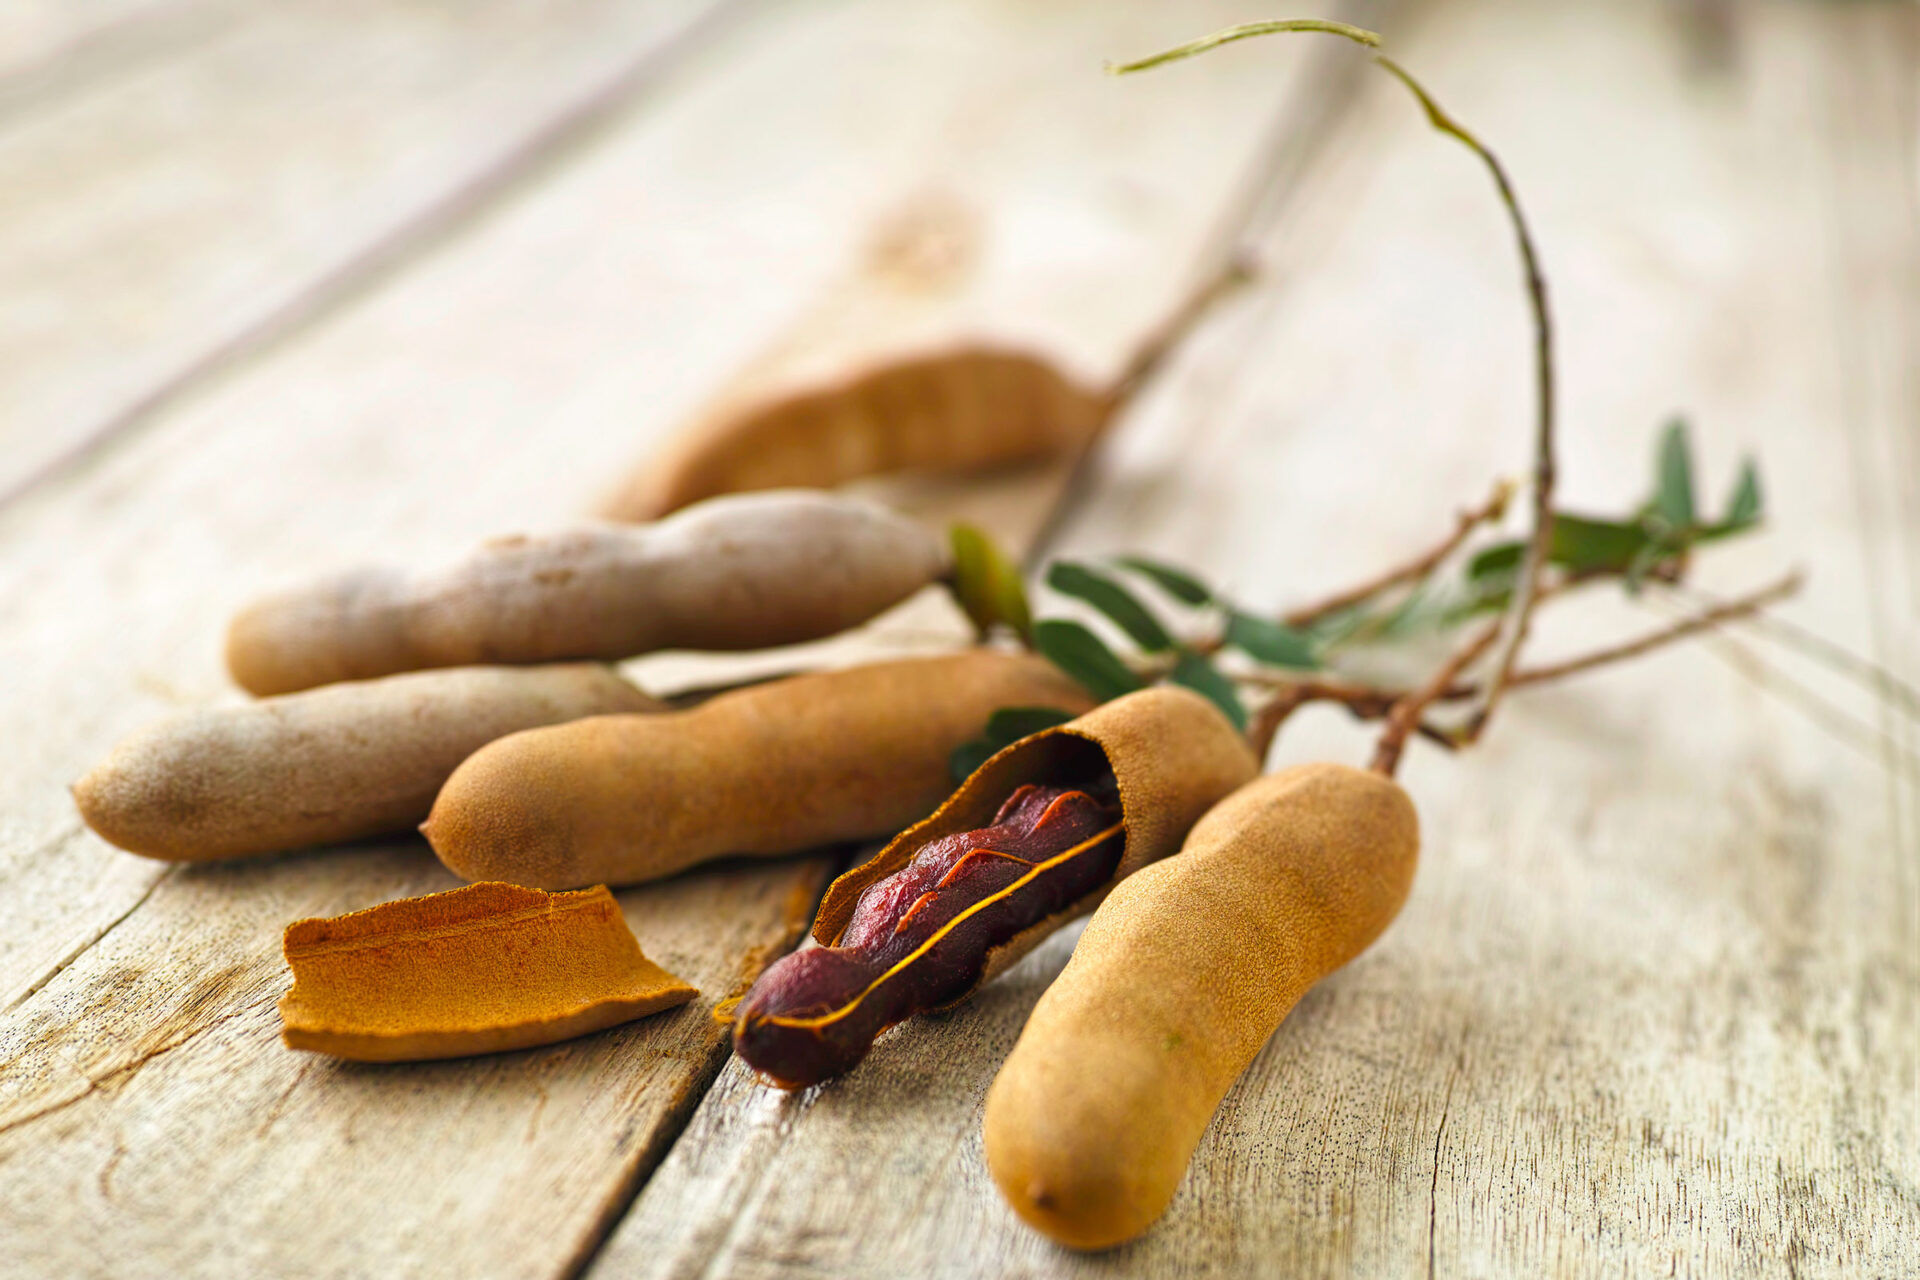 Tamarind fruit is native of Africa and grows in many tropical regions